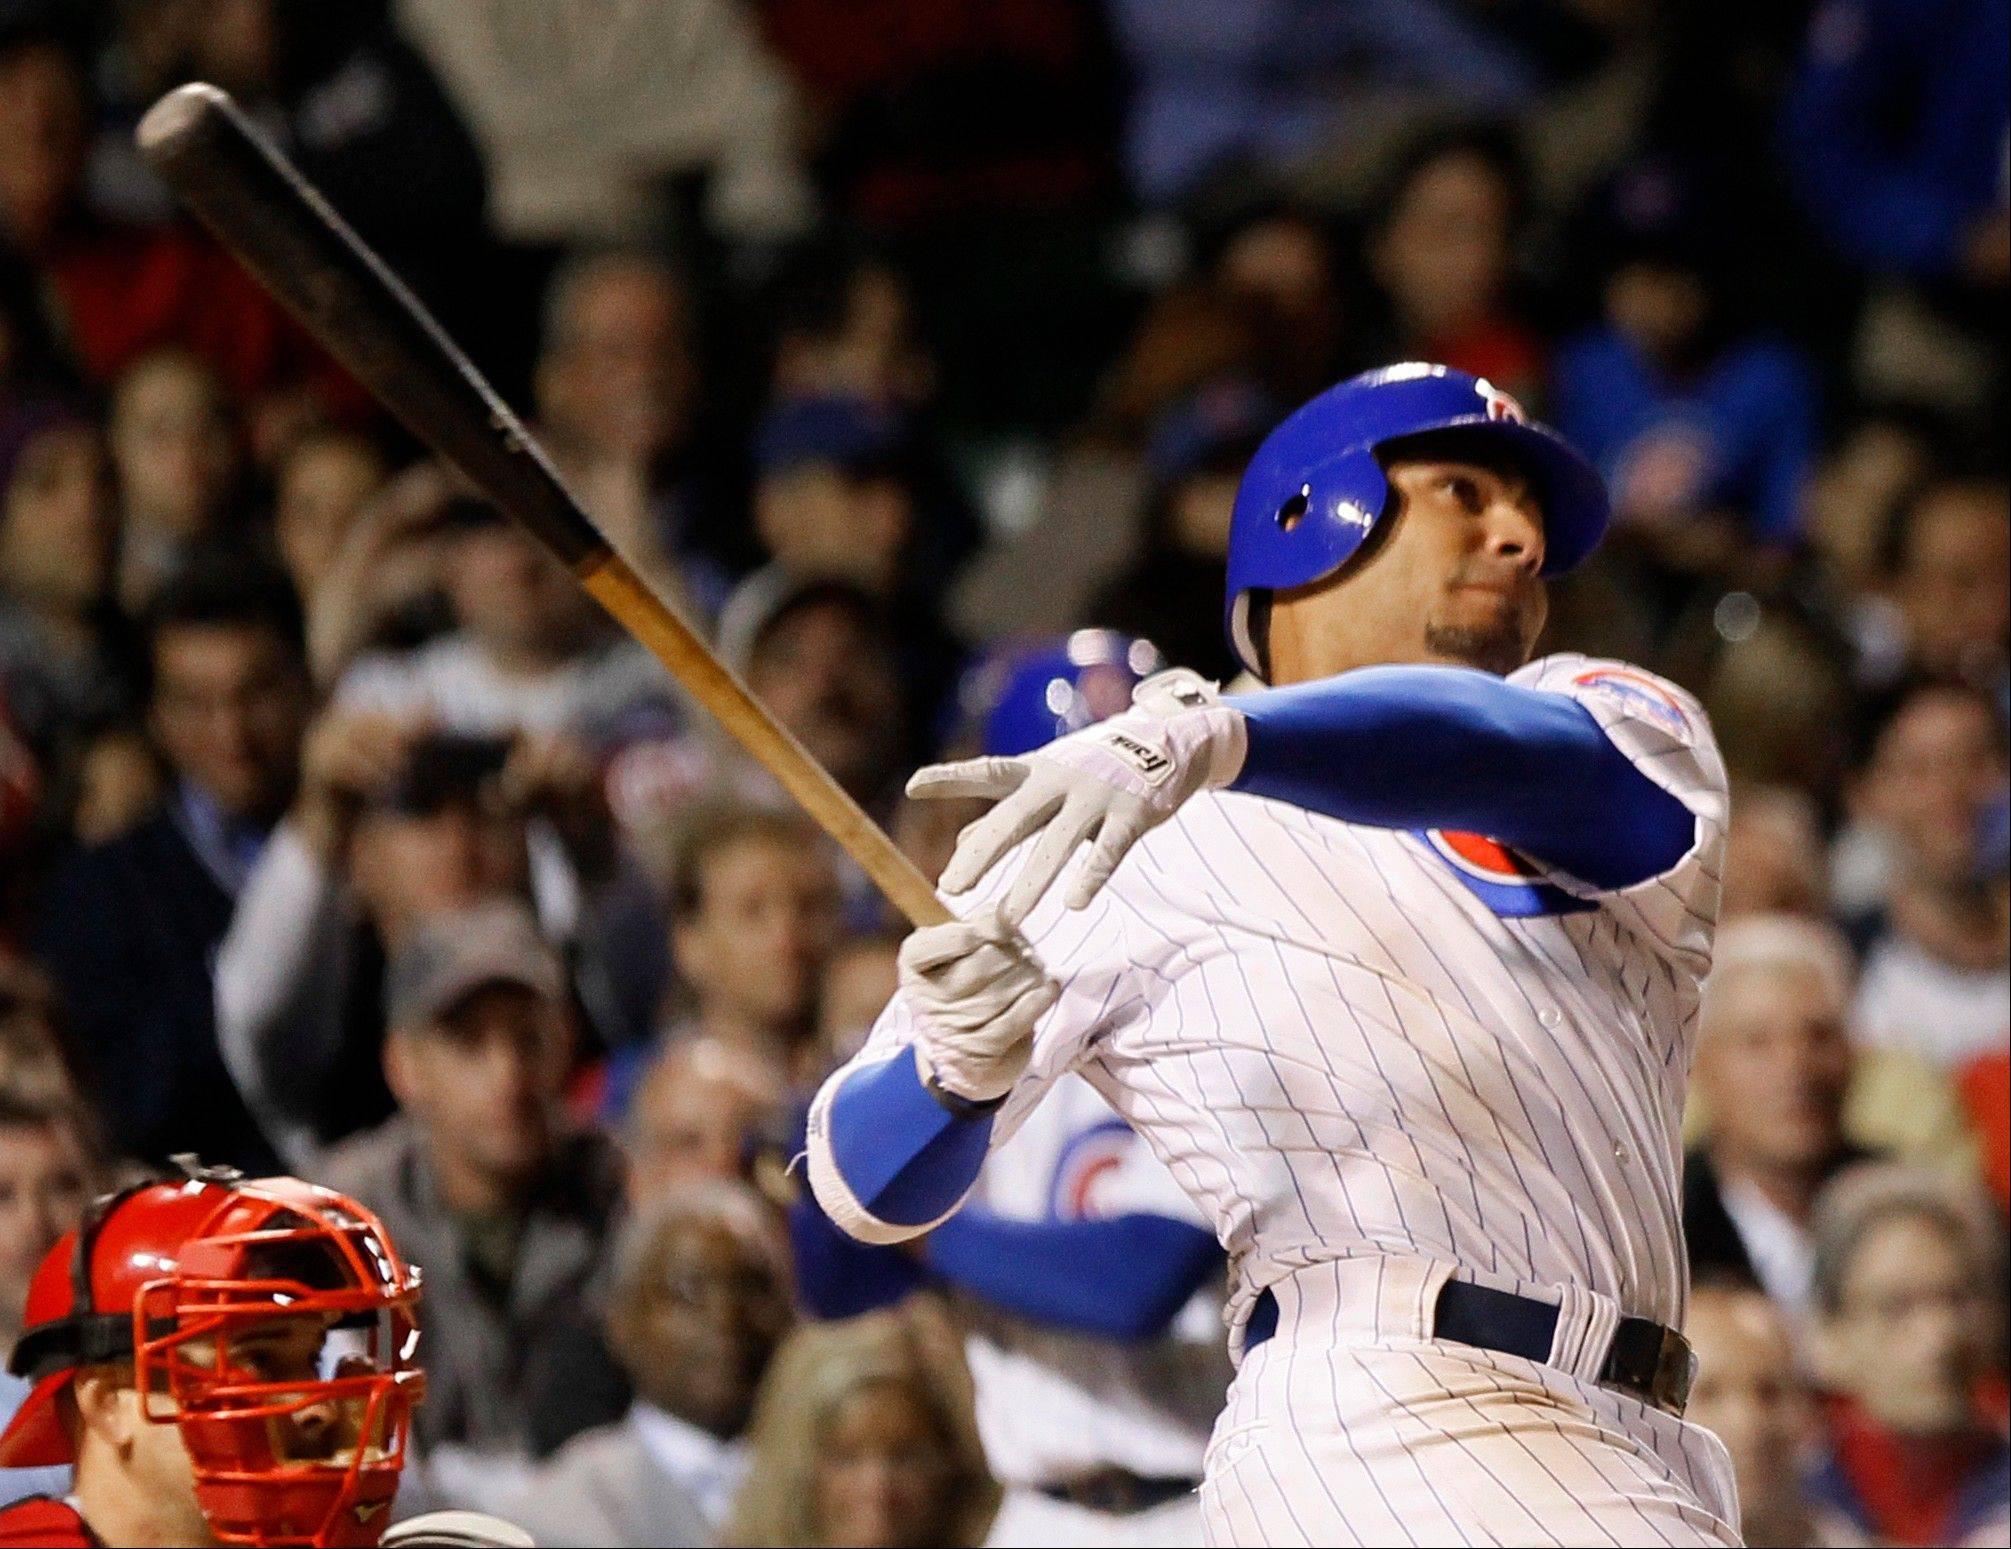 Carlos Pena launches a 3-run home run off Cincinnati Reds relief pitcher Bill Bray to score Starlin Castro and Aramis Ramirez during the eighth inning of the Cubs' win Wednesday.